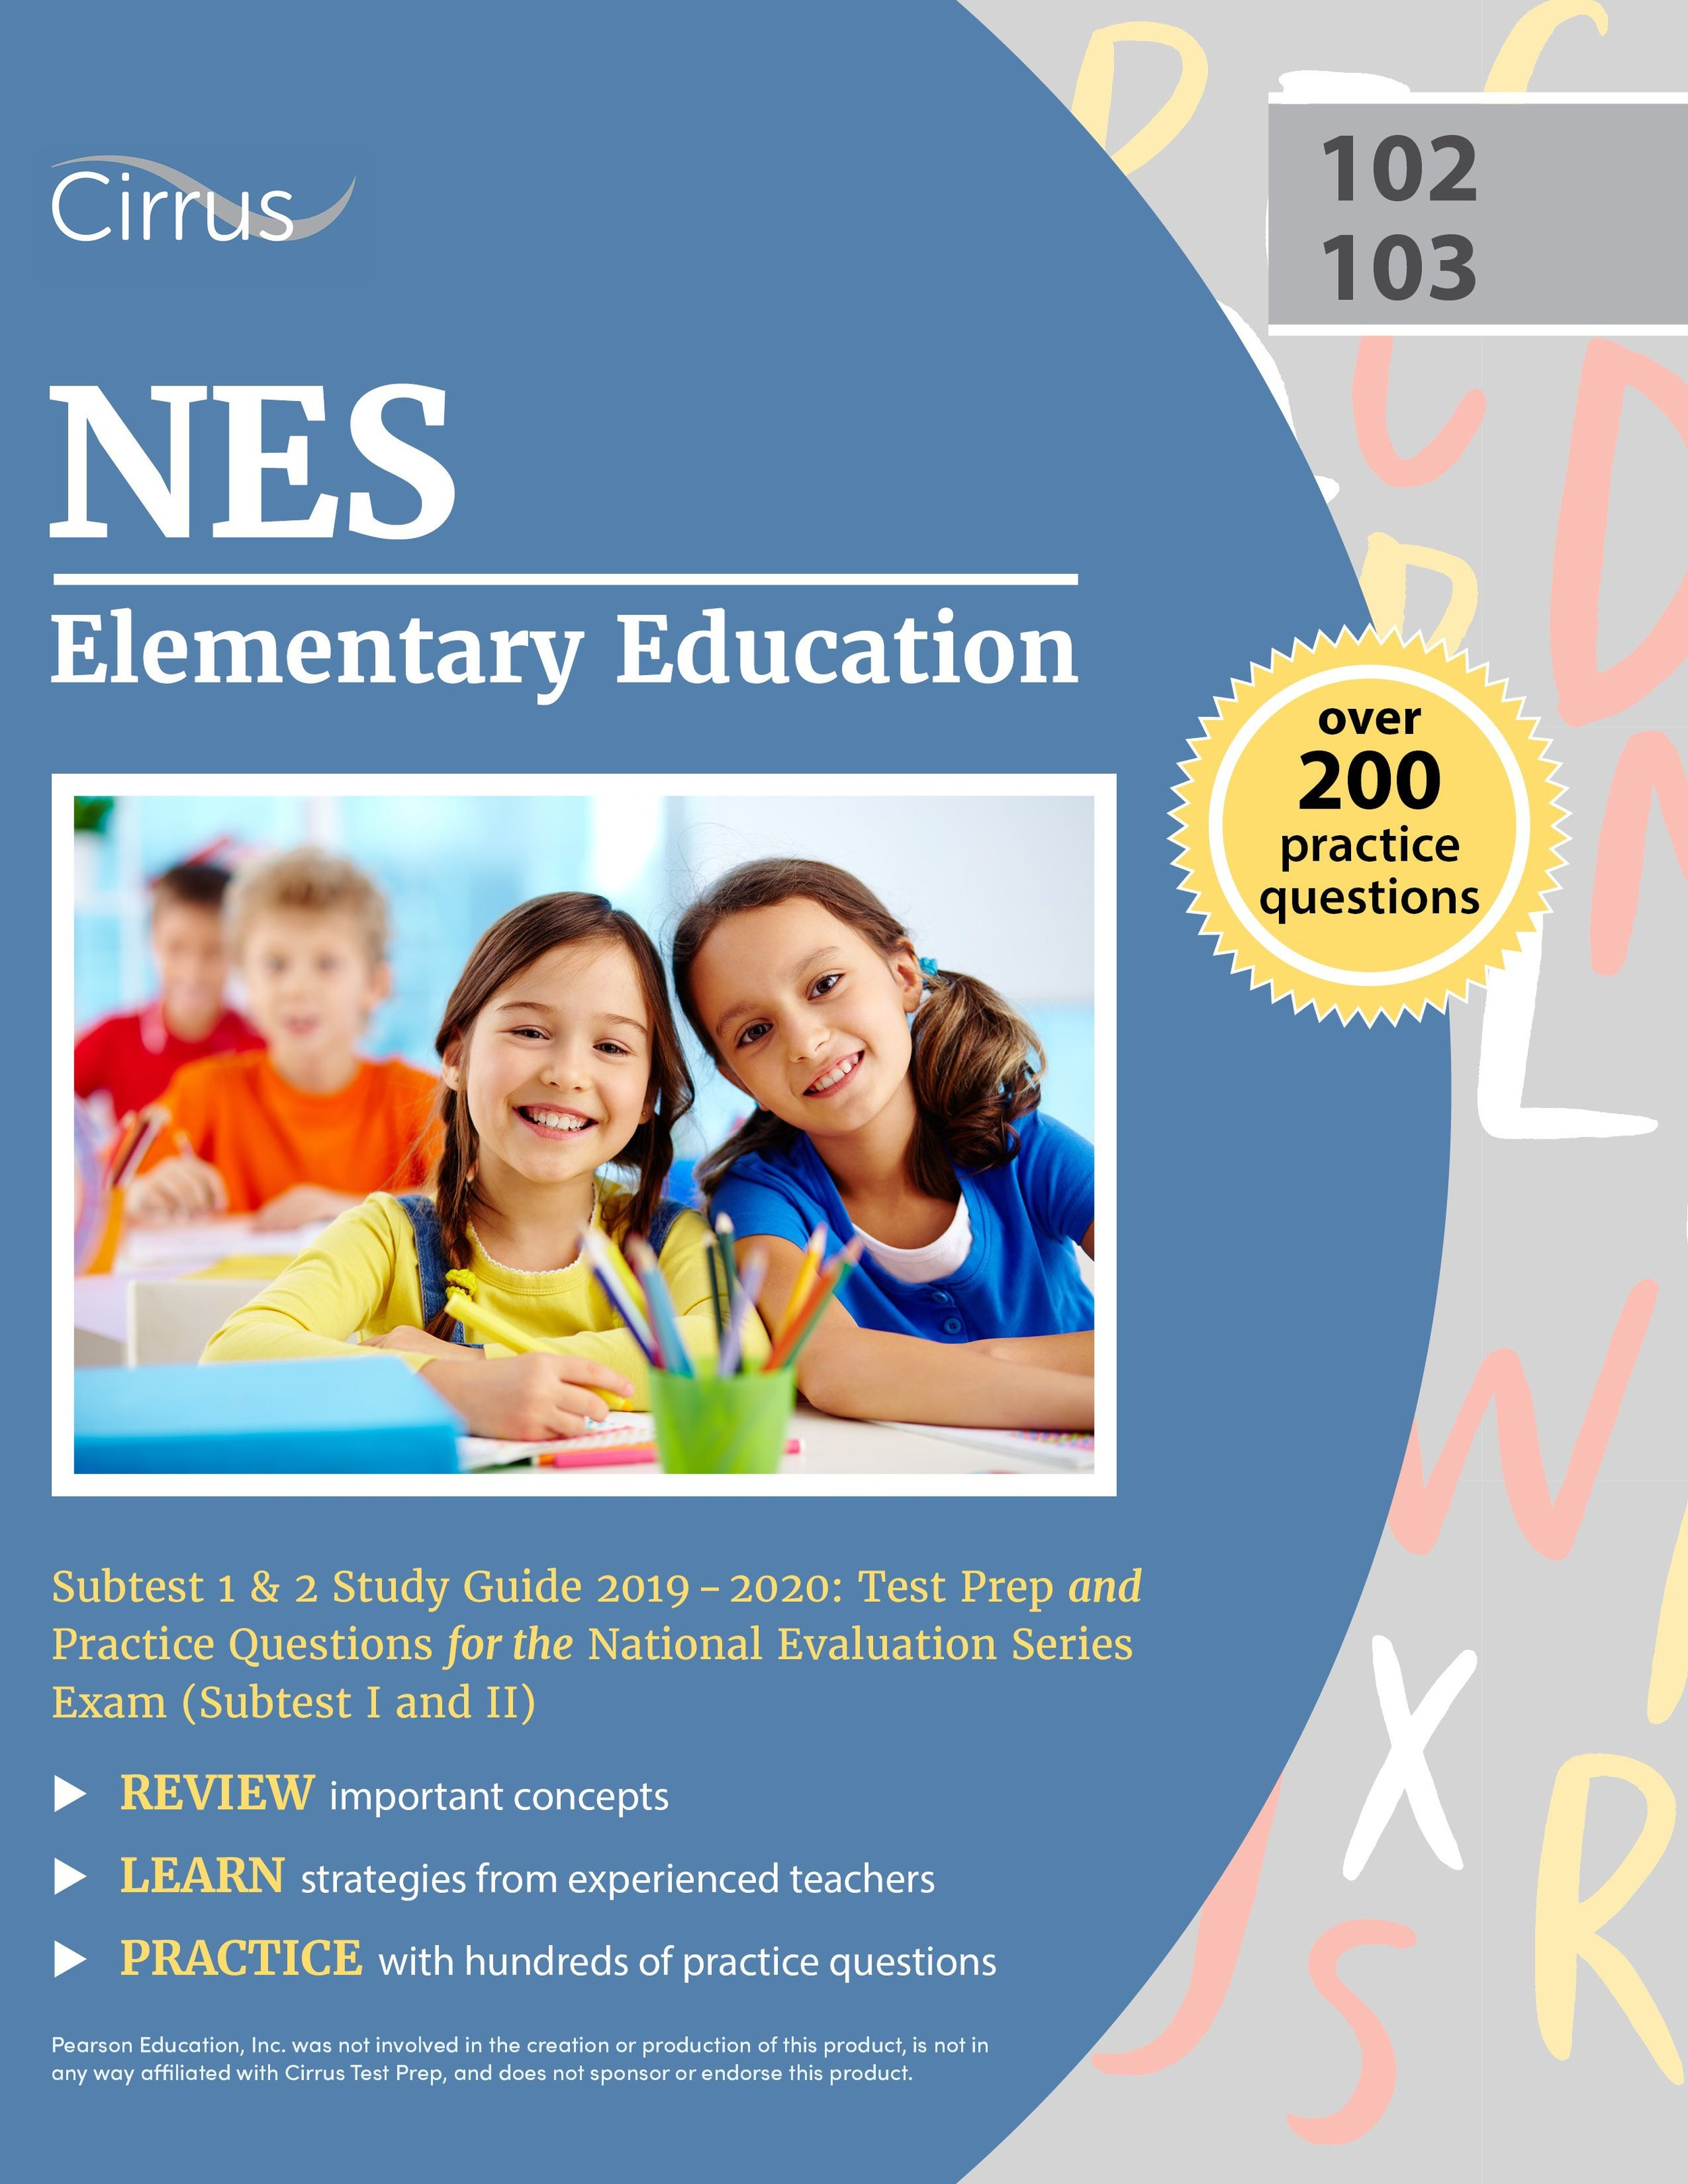 NES Elementary Education 102 & 103 Study Guide 2019 – 2020